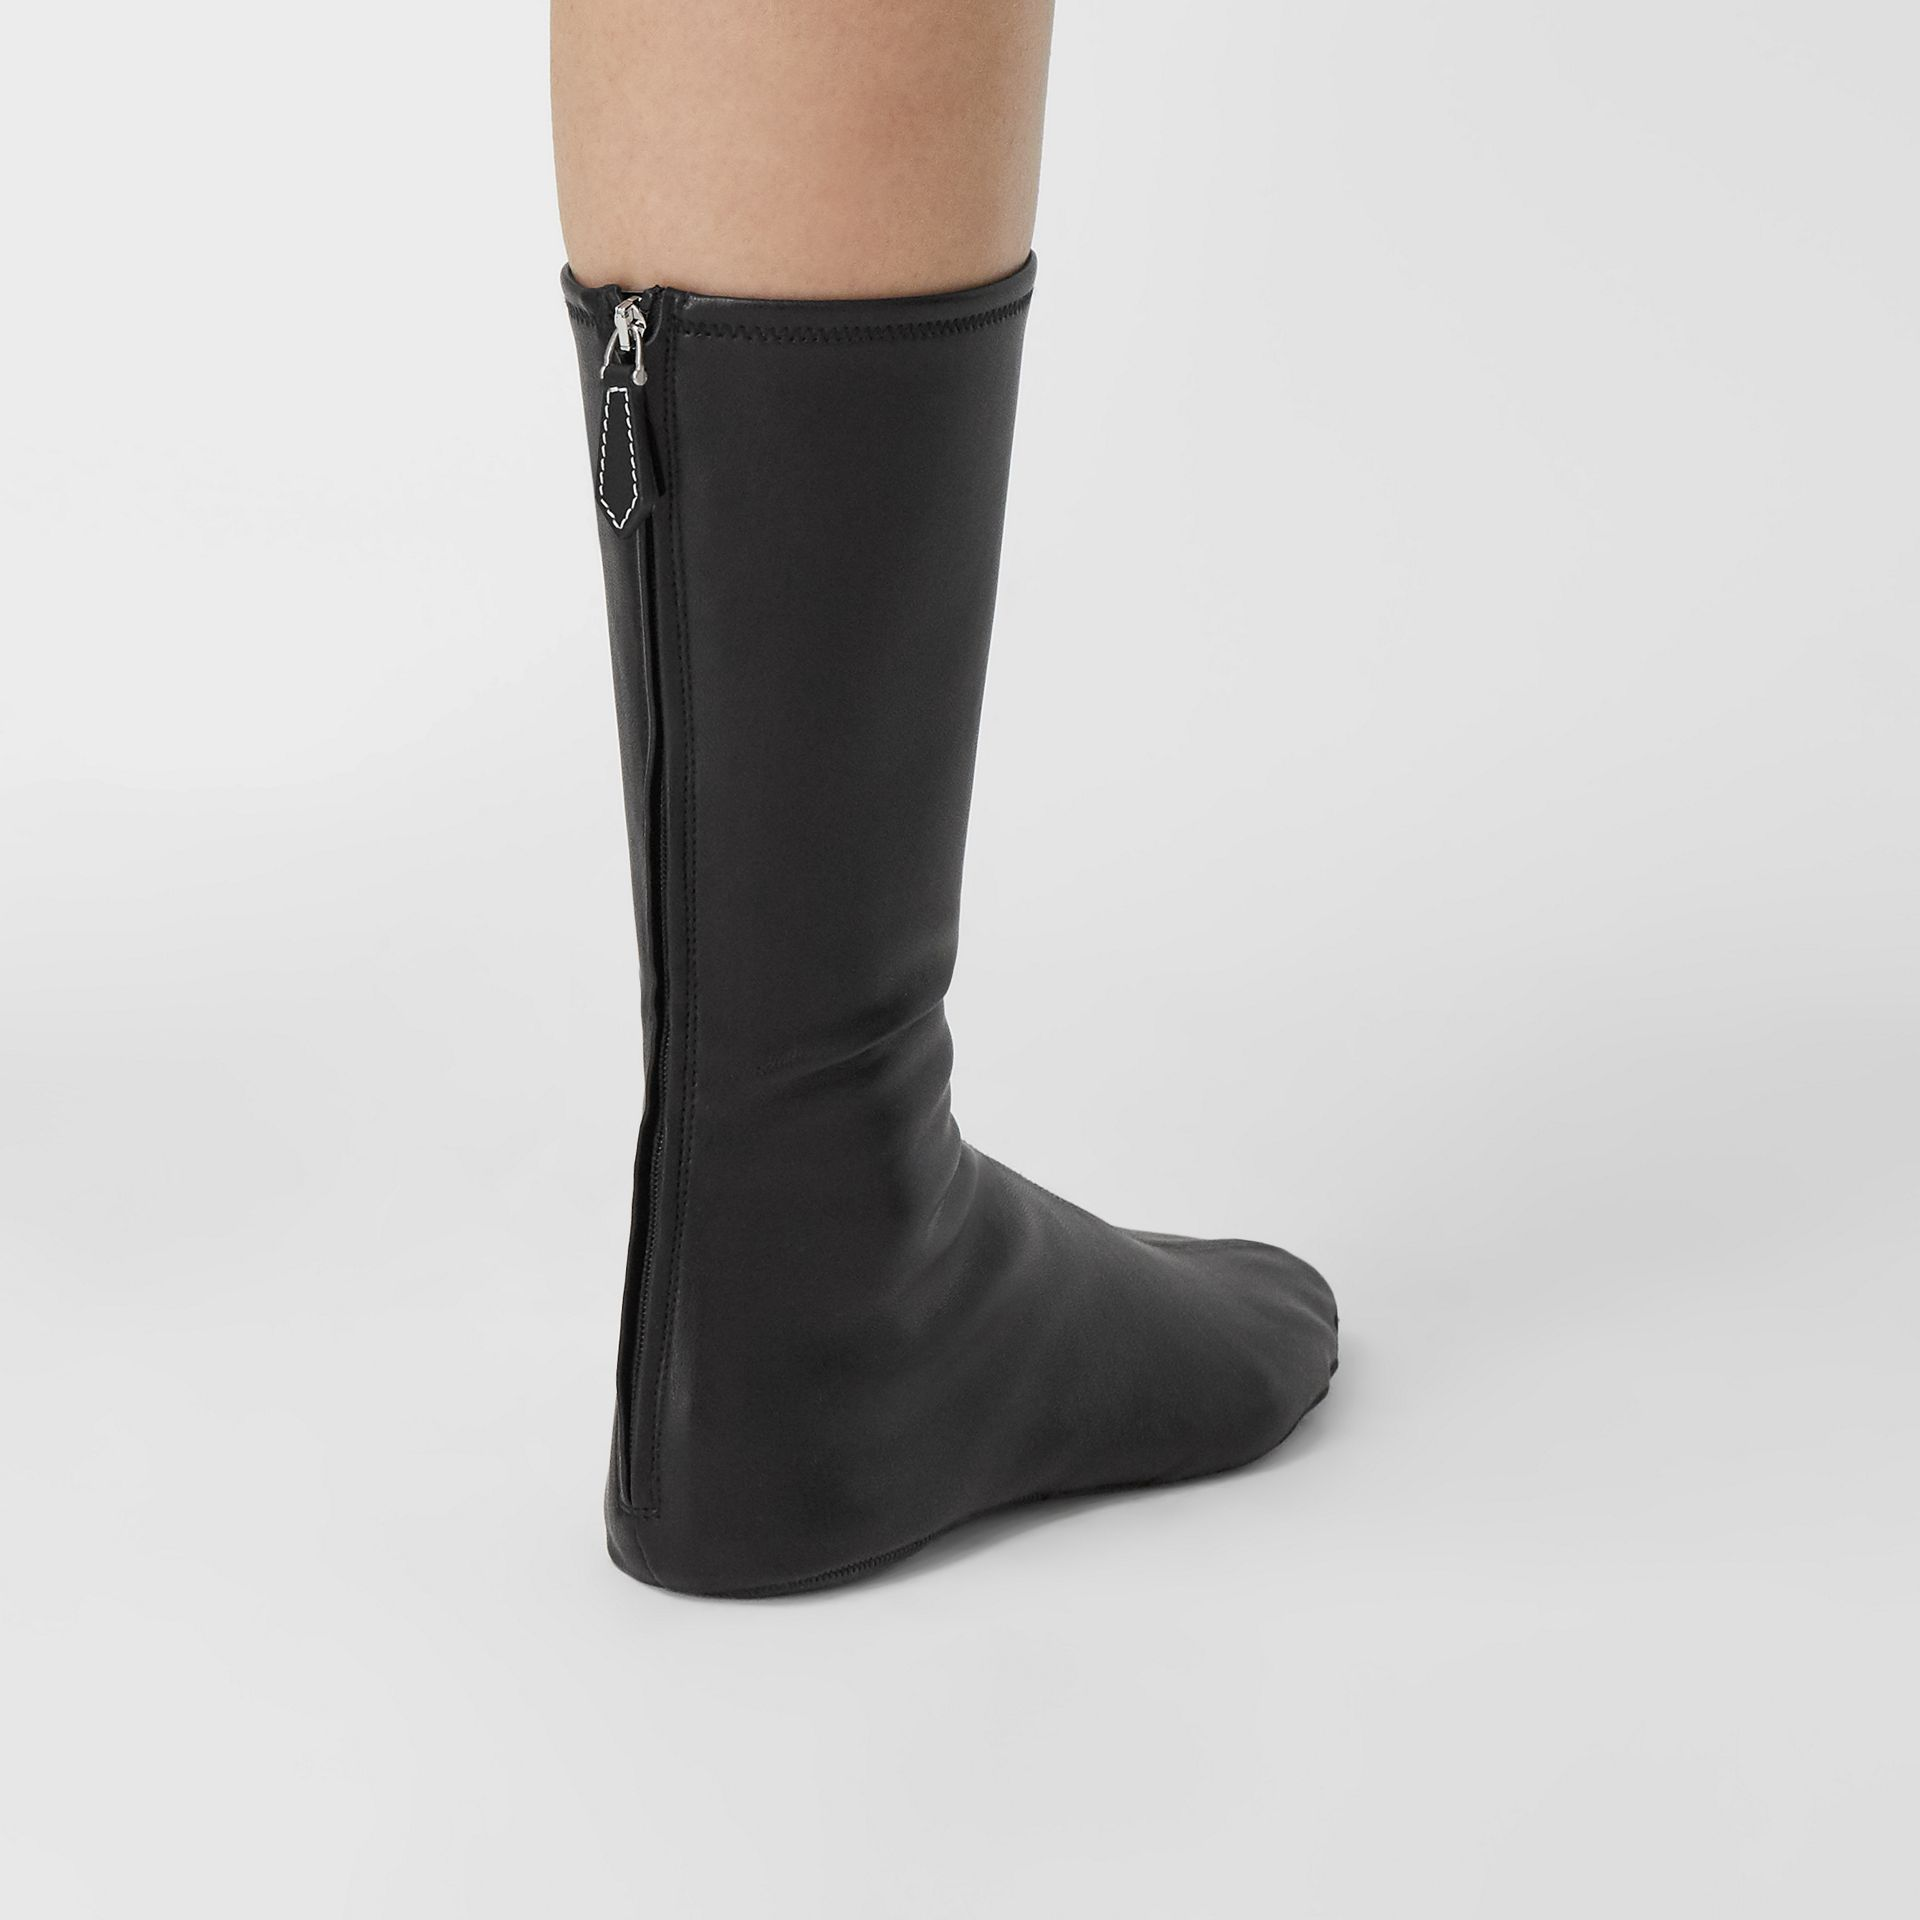 Faux Leather Mid-calf Socks in Black - Women | Burberry - gallery image 3